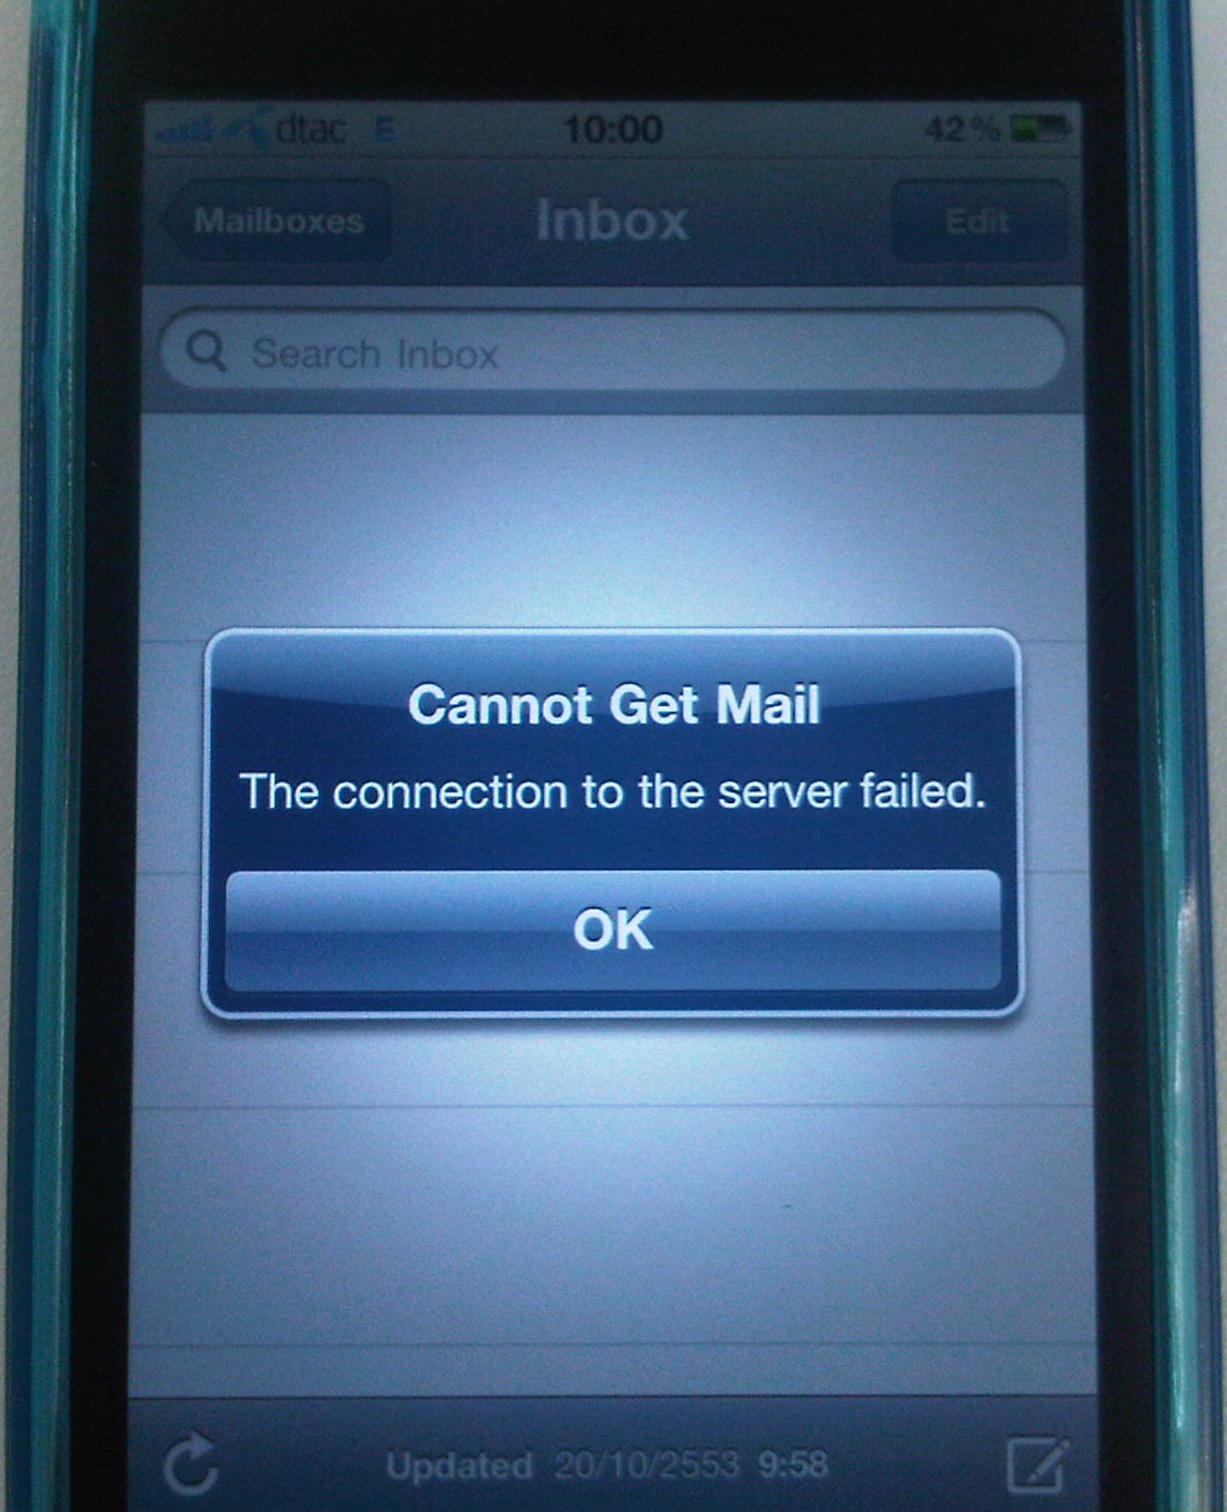 cannot get mail on iphone knowledge base iphone cannot get mail the connection 16766